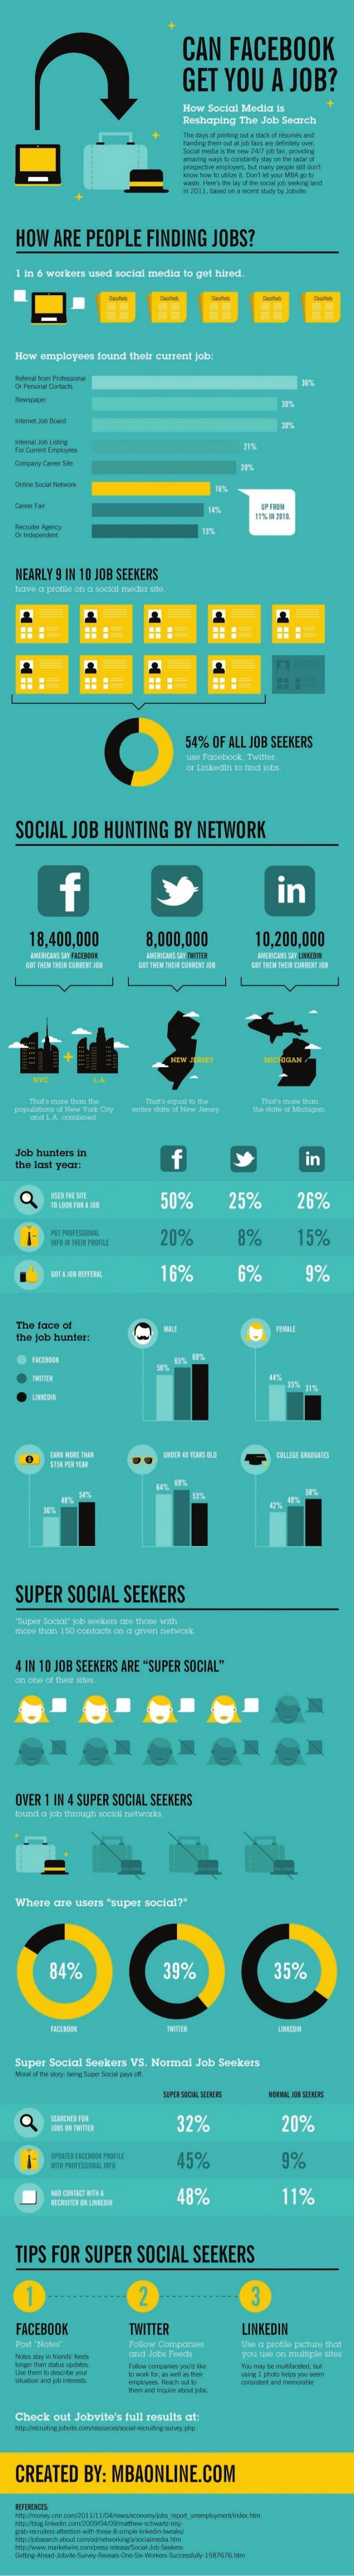 INFOGRAPHIC: Can Facebook, Twitter And Linkedin Really Get You A Job? - BusinessInsider